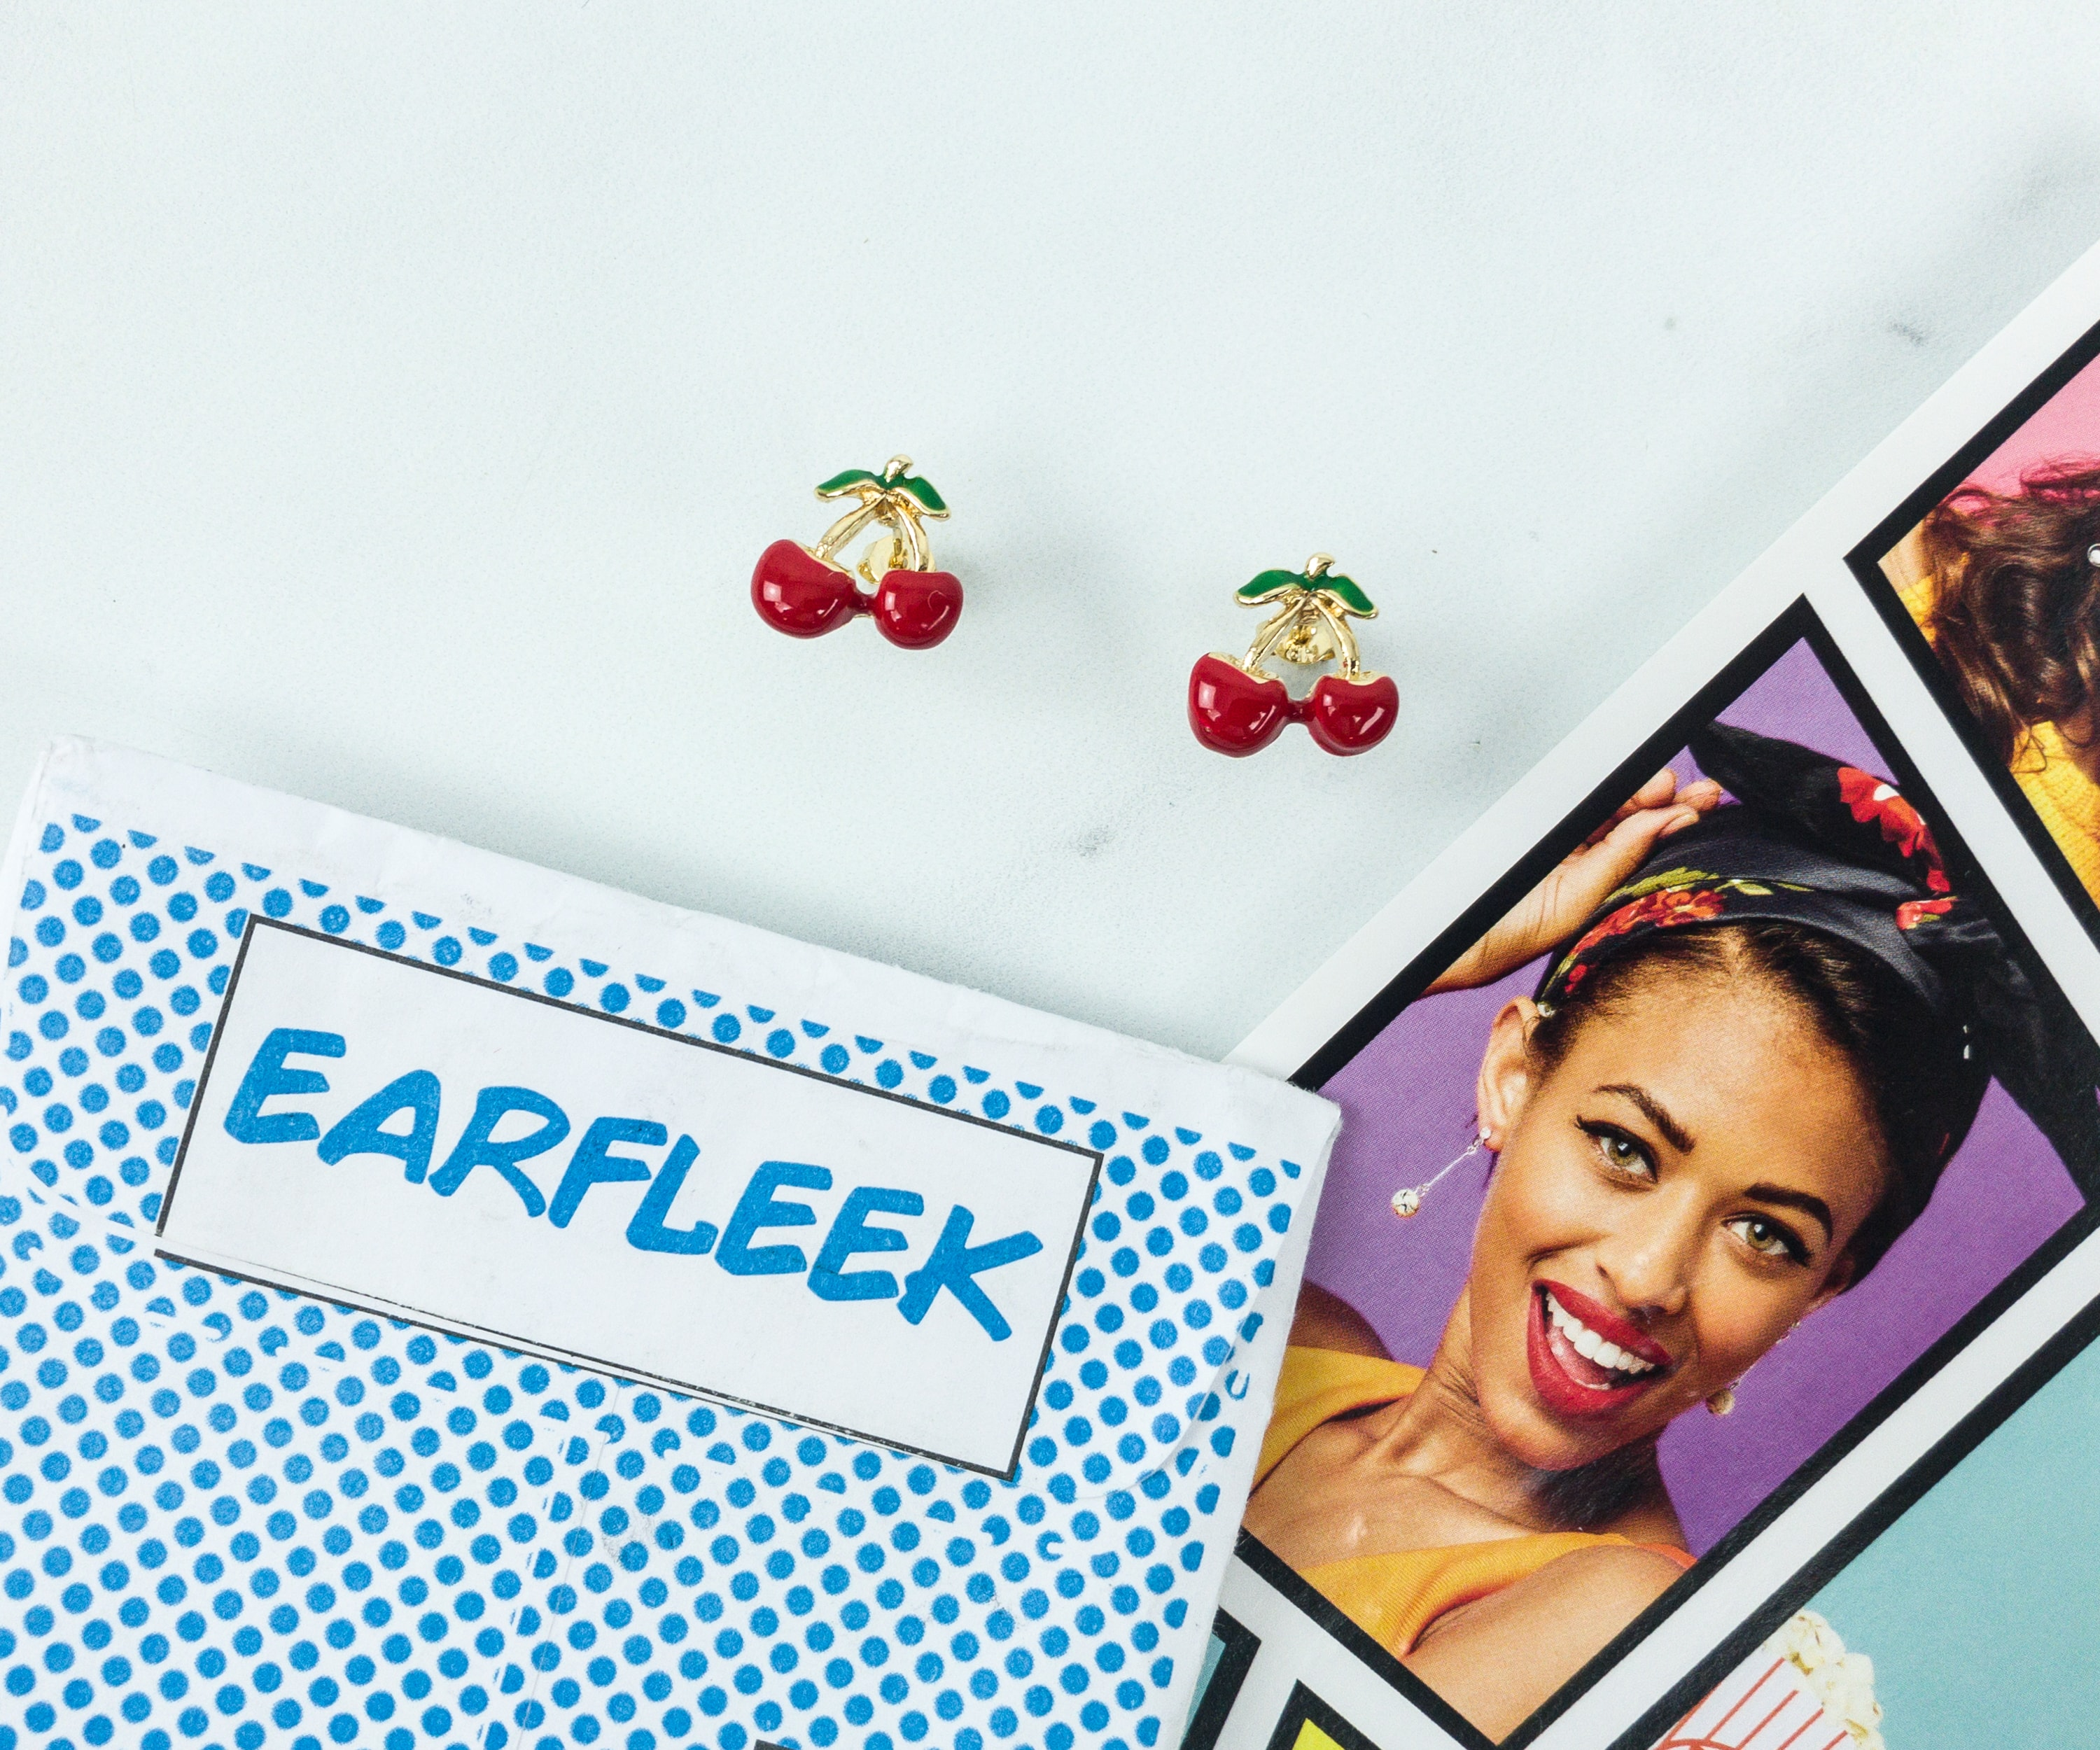 EarFleek Silly & Fun December 2018 Subscription Box Review + 50% Off Coupon